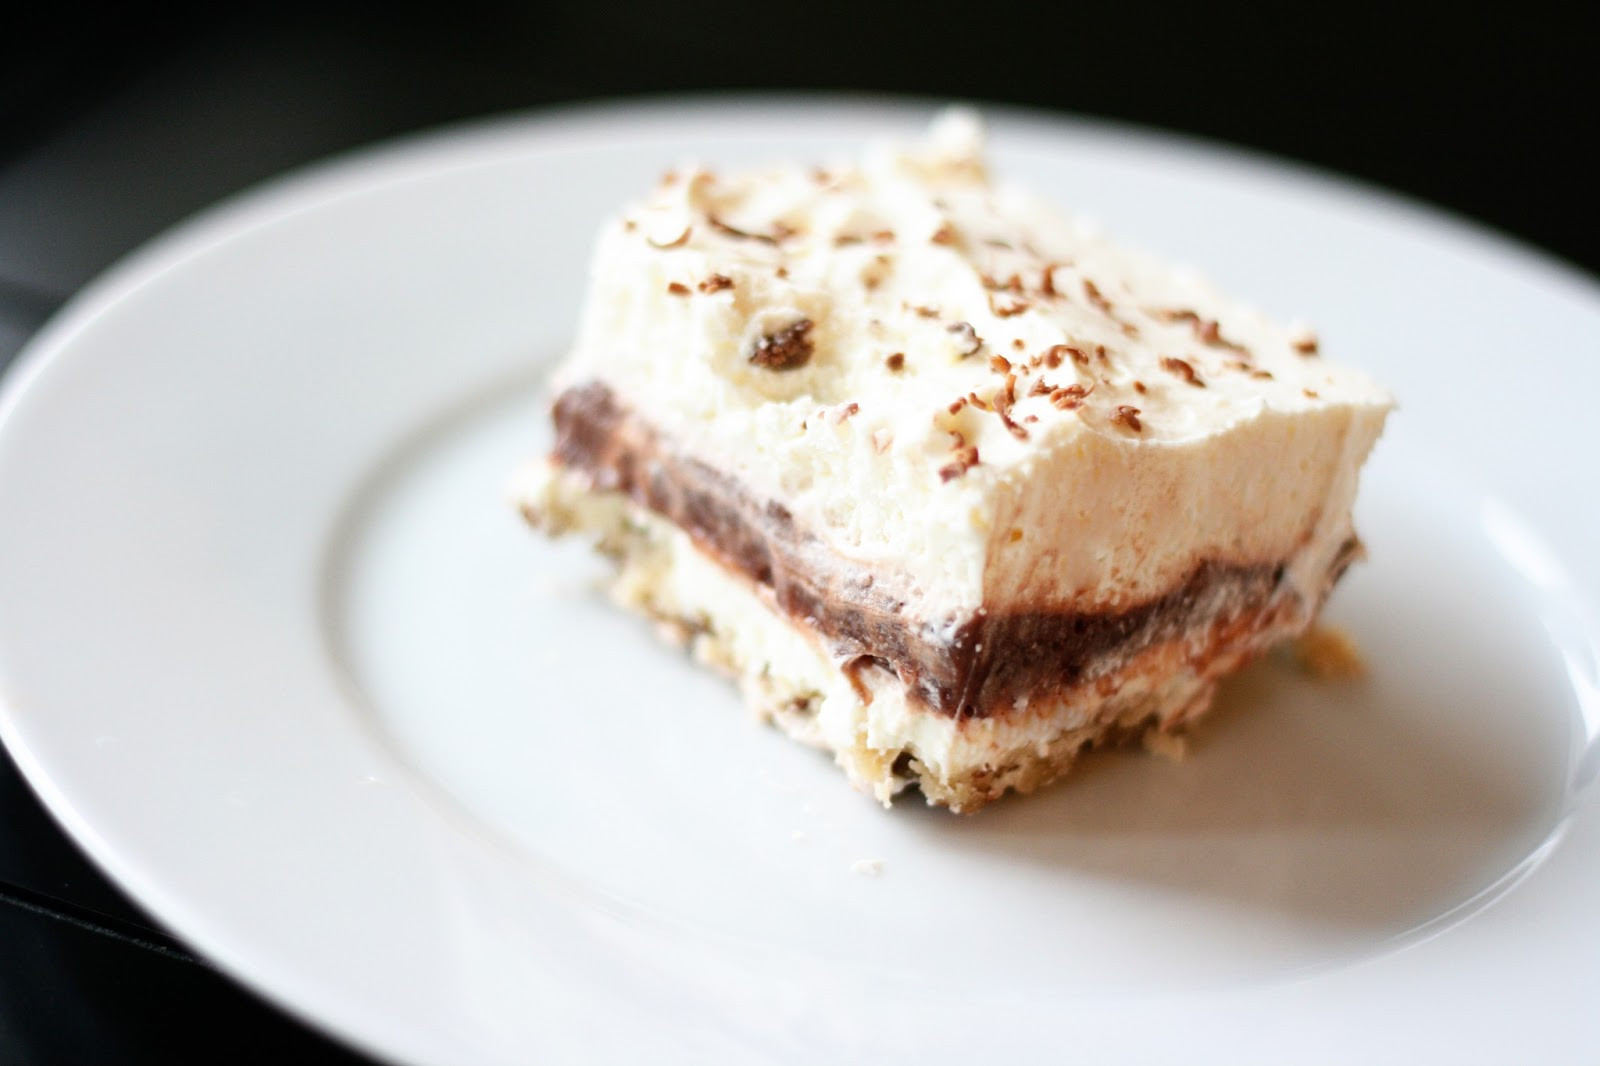 Low Carb Chocolate Dessert Recipes  Naughty Carbs Chocolate Pudding Dessert Low Carb